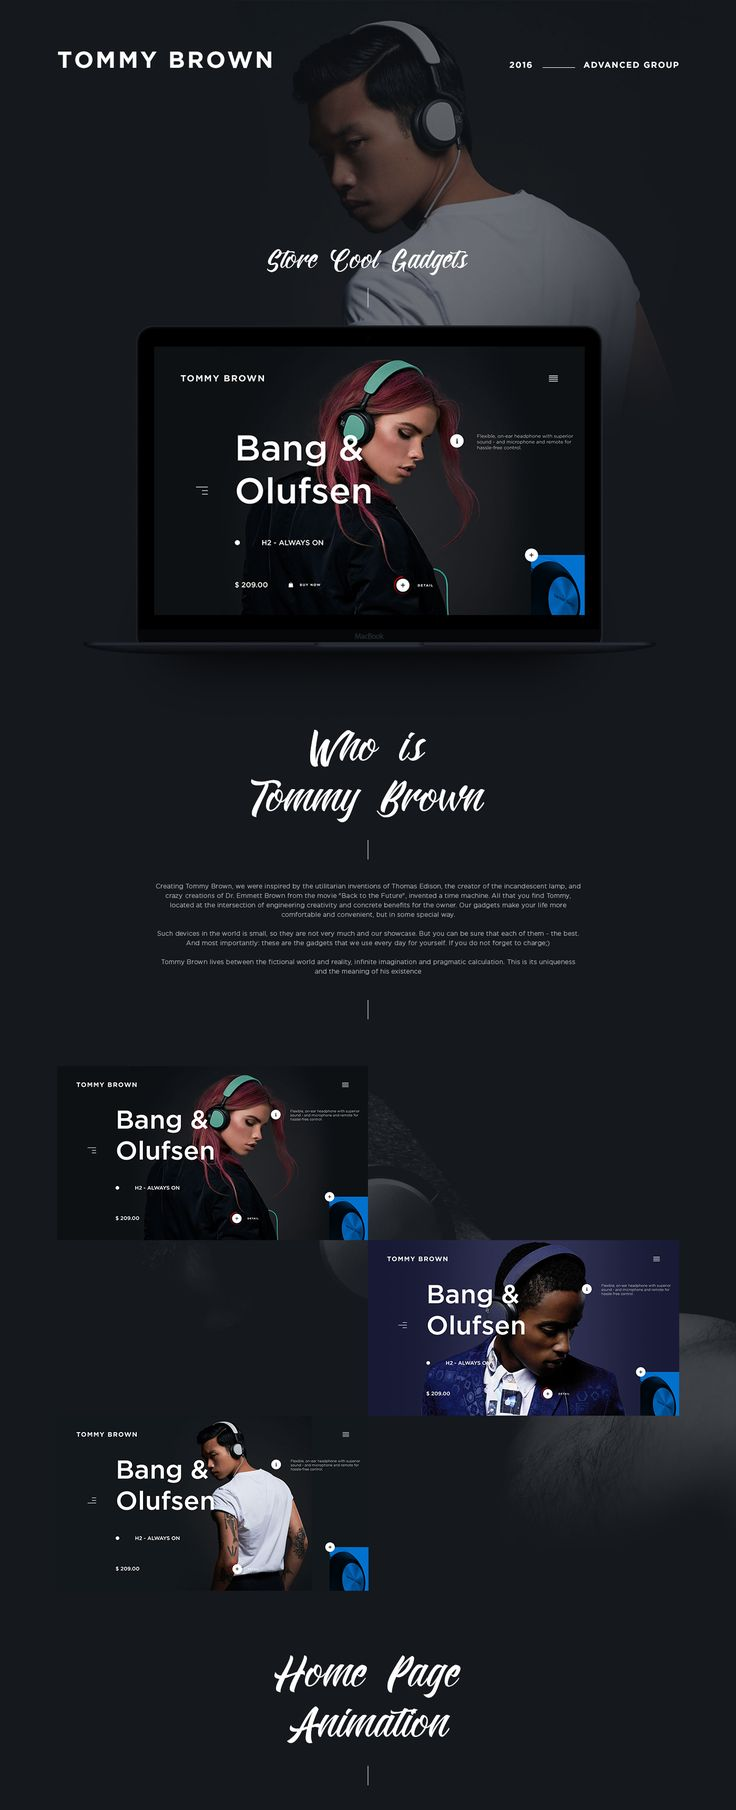 Tommy Brown 2016 on Behance